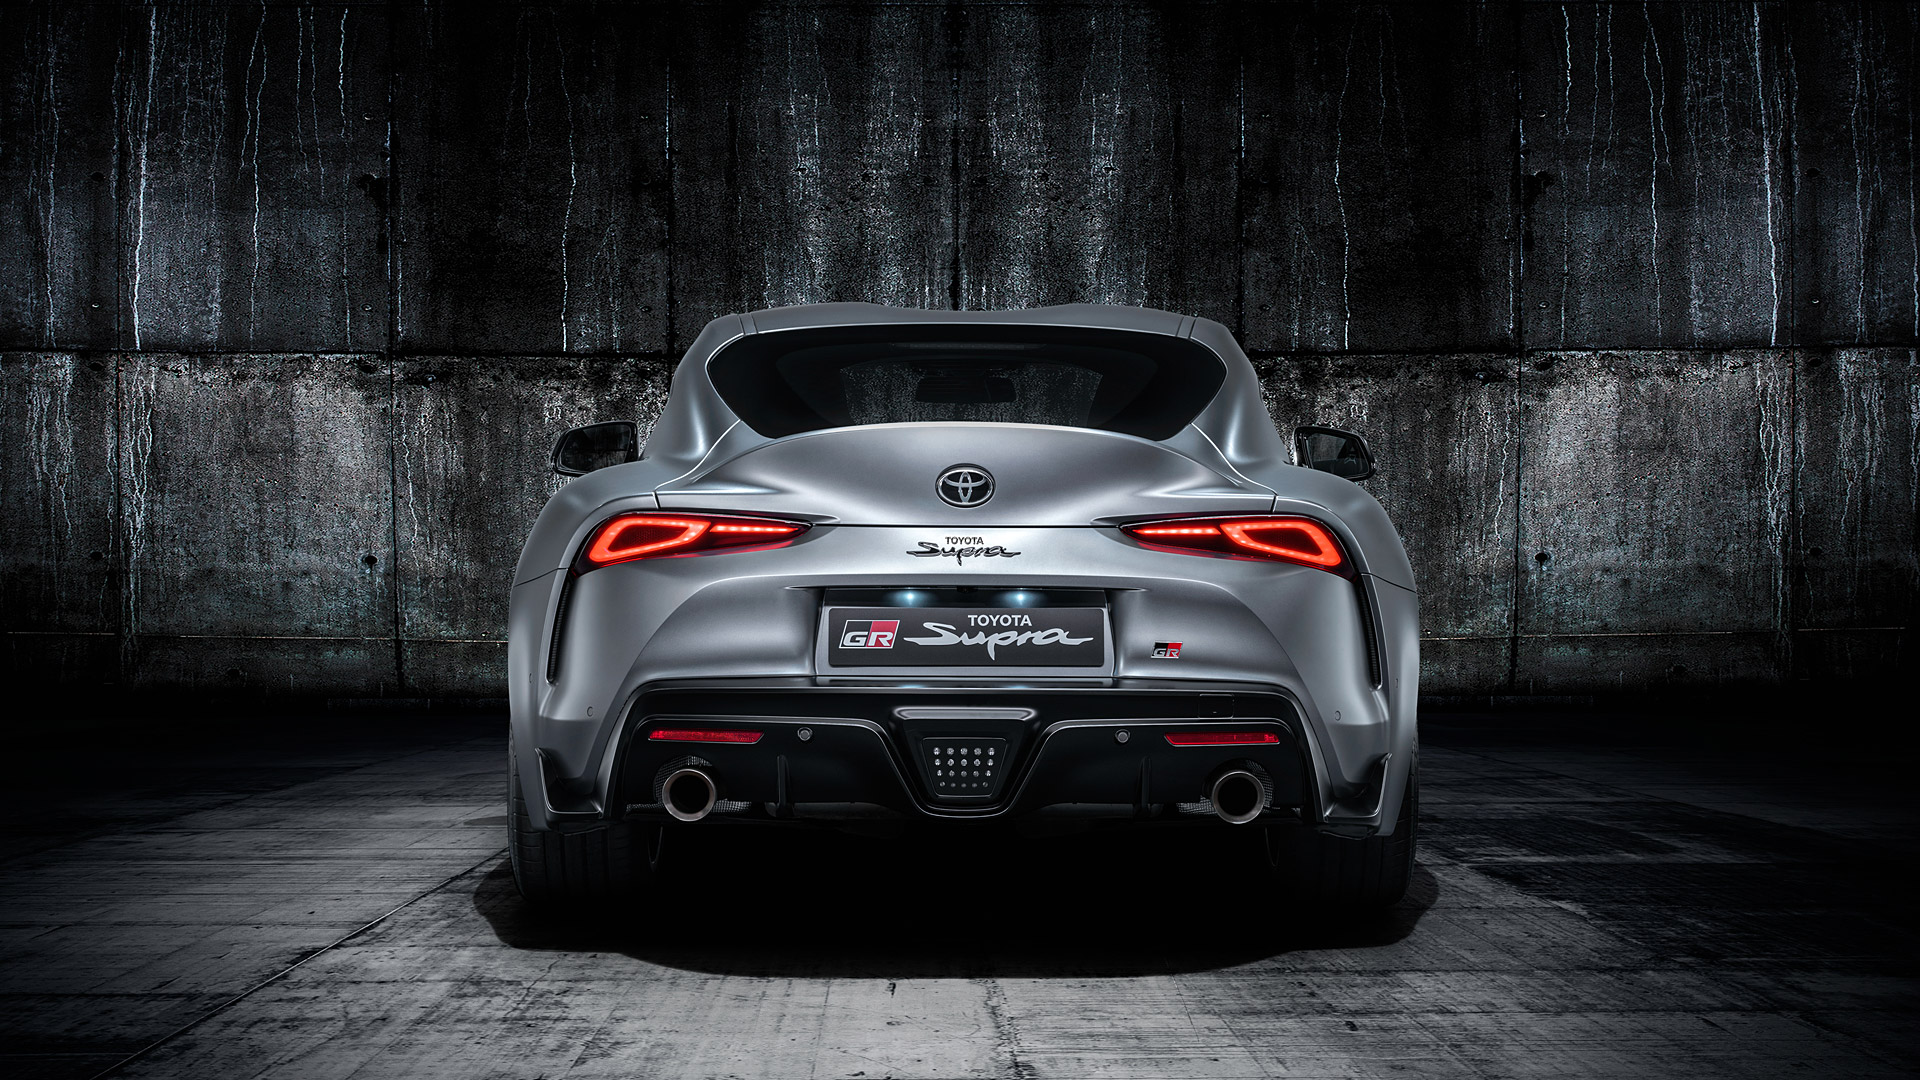 download Toyota Supra 2020 Iphone 1920x1080 Wallpaper 1920x1080